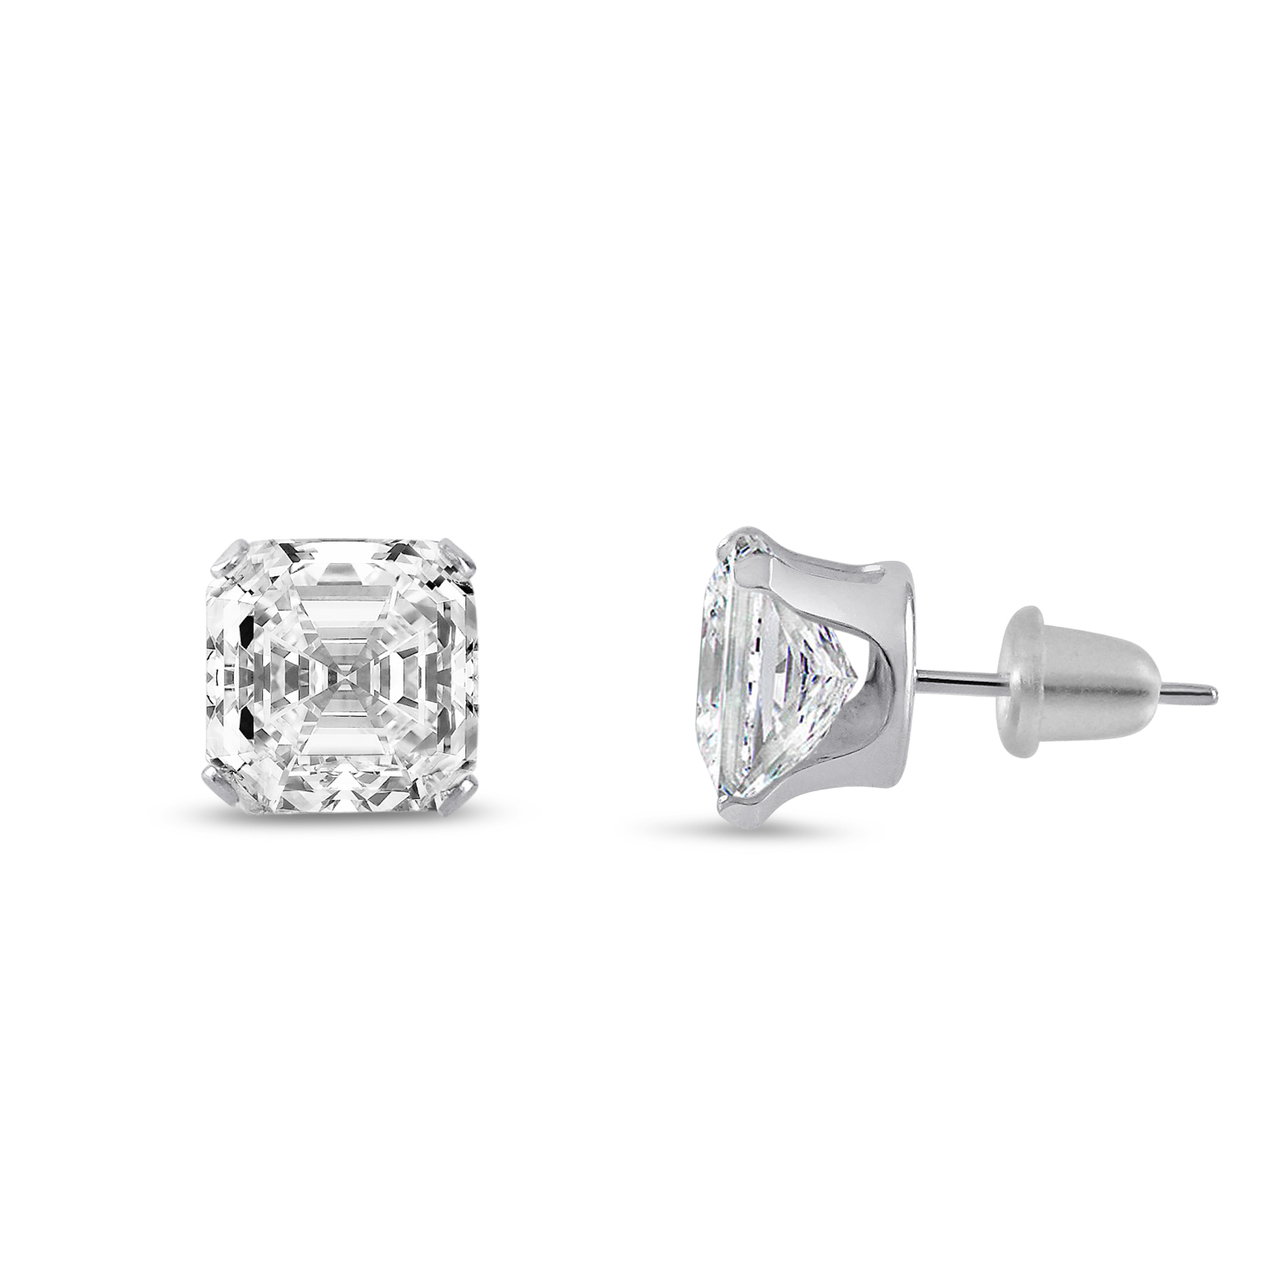 Cher Cubic Zirconia White Gold Earrings